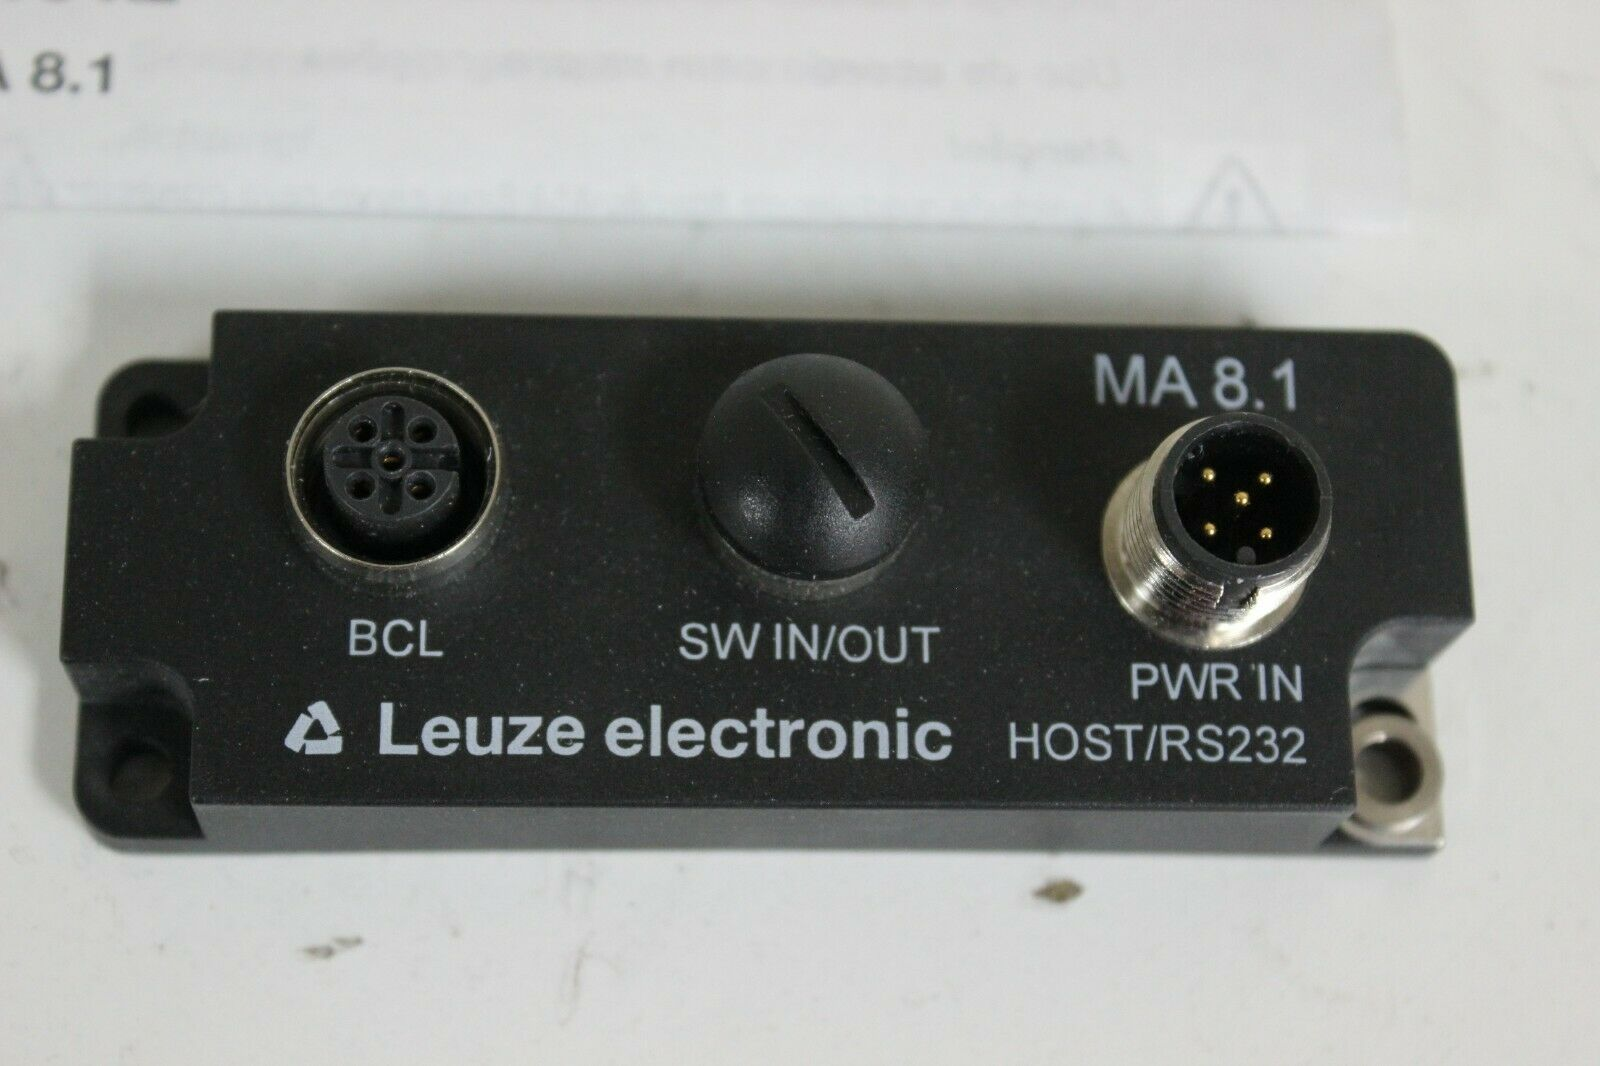 Leuze electronic MA 8.1 Modular connection unit  50101699 New